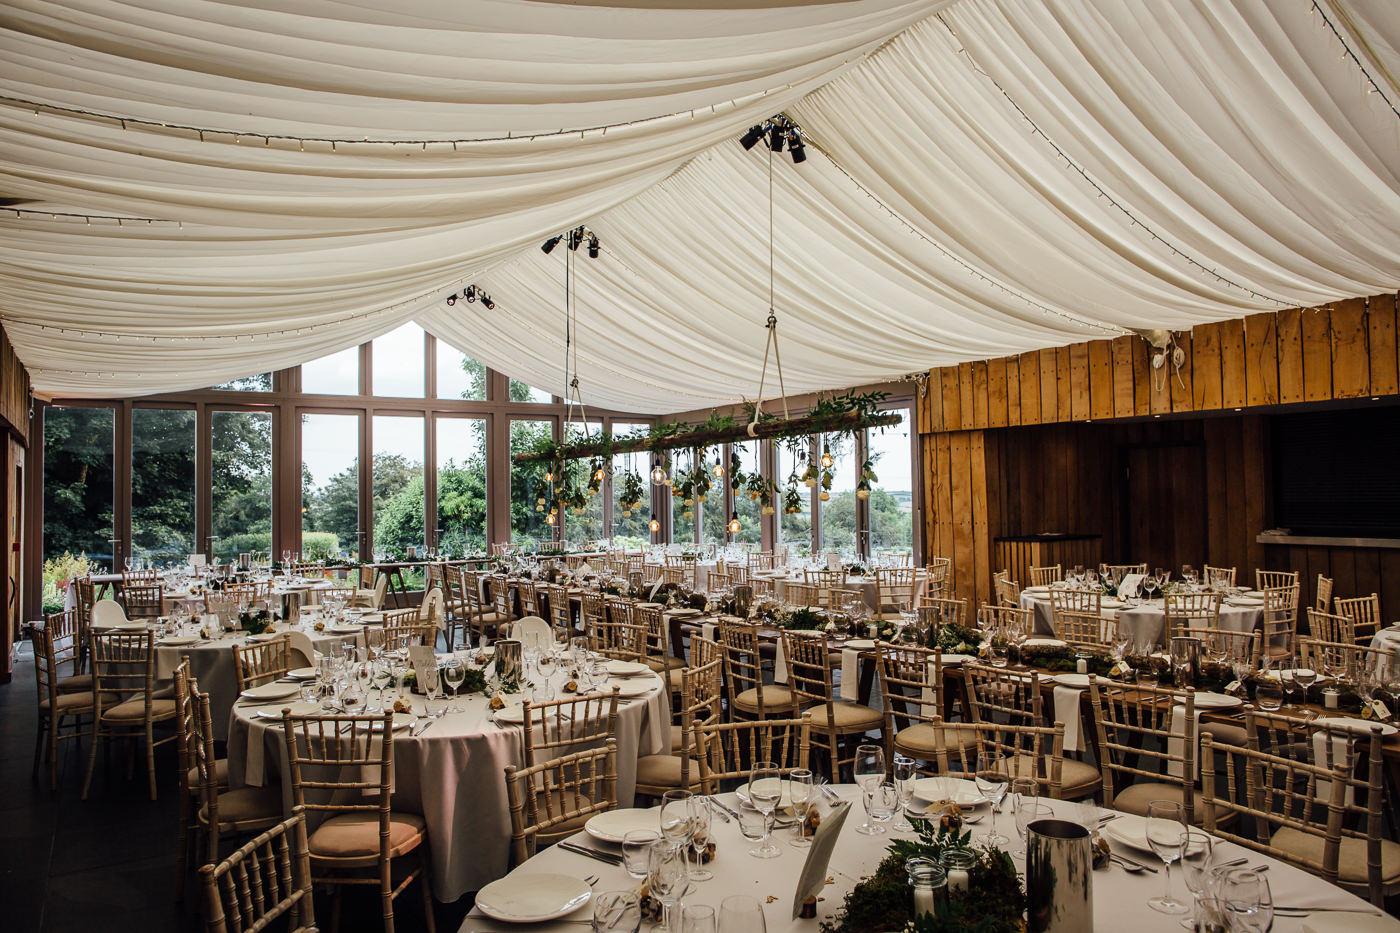 Trevenna Barn Wedding